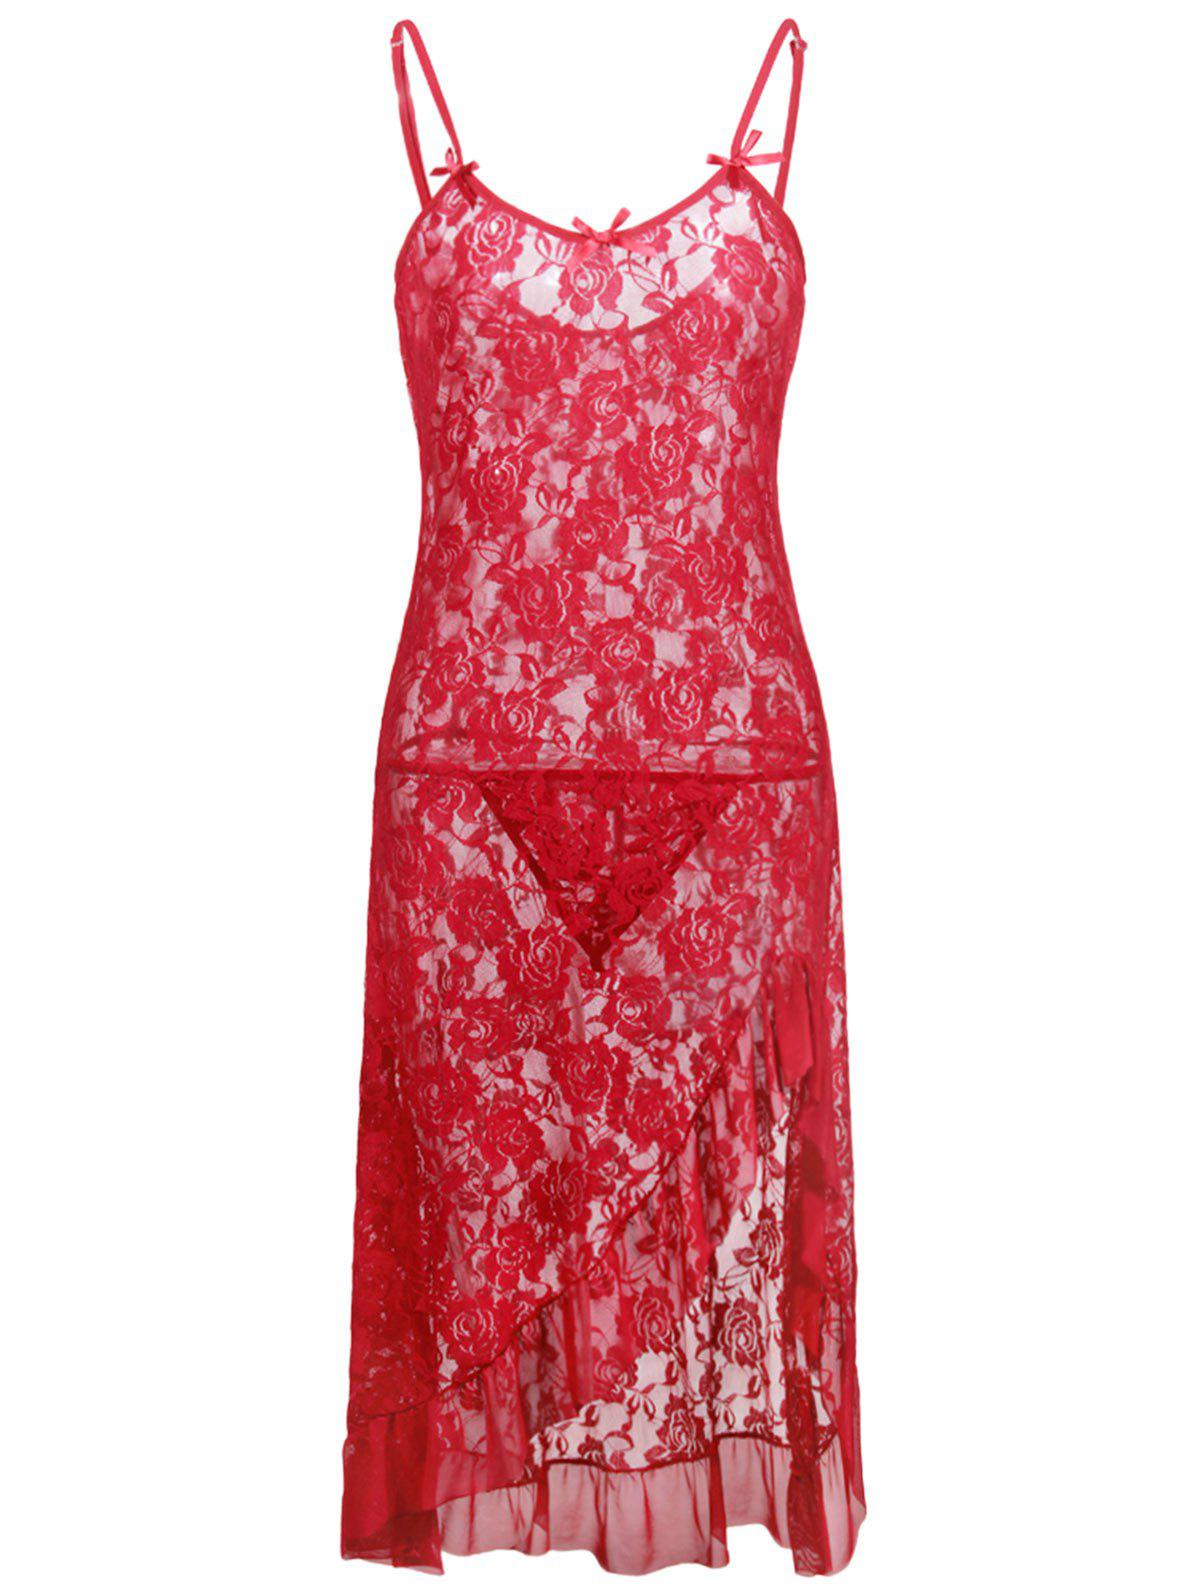 Chic Lace Plus Size Ruffle Hem Slip Dress